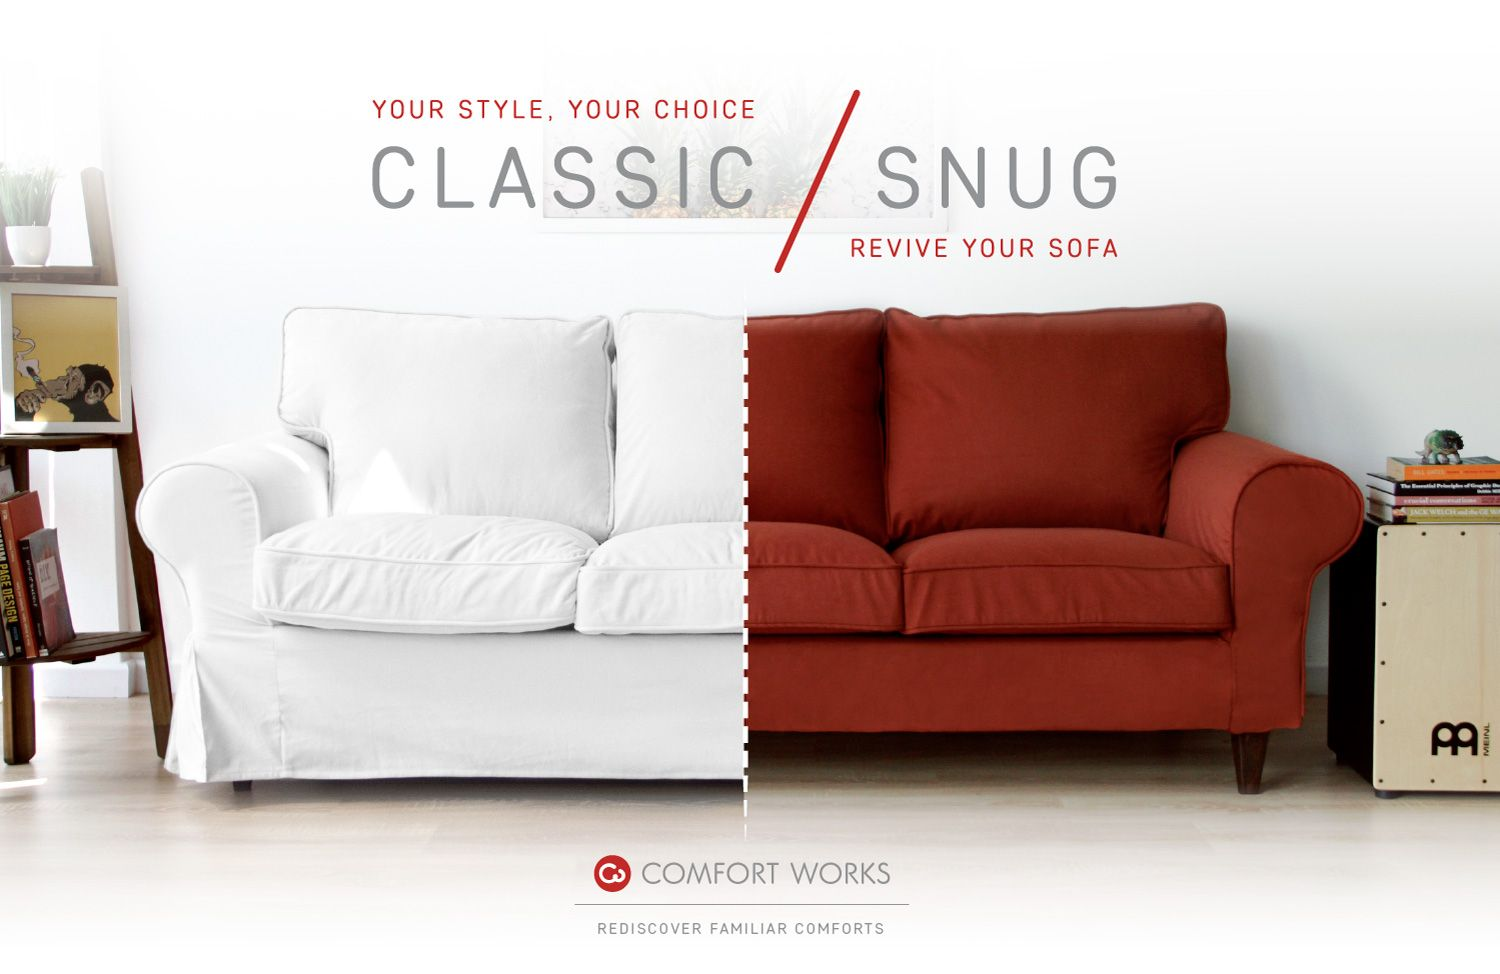 Comfort Works Custom Slipcovers Your